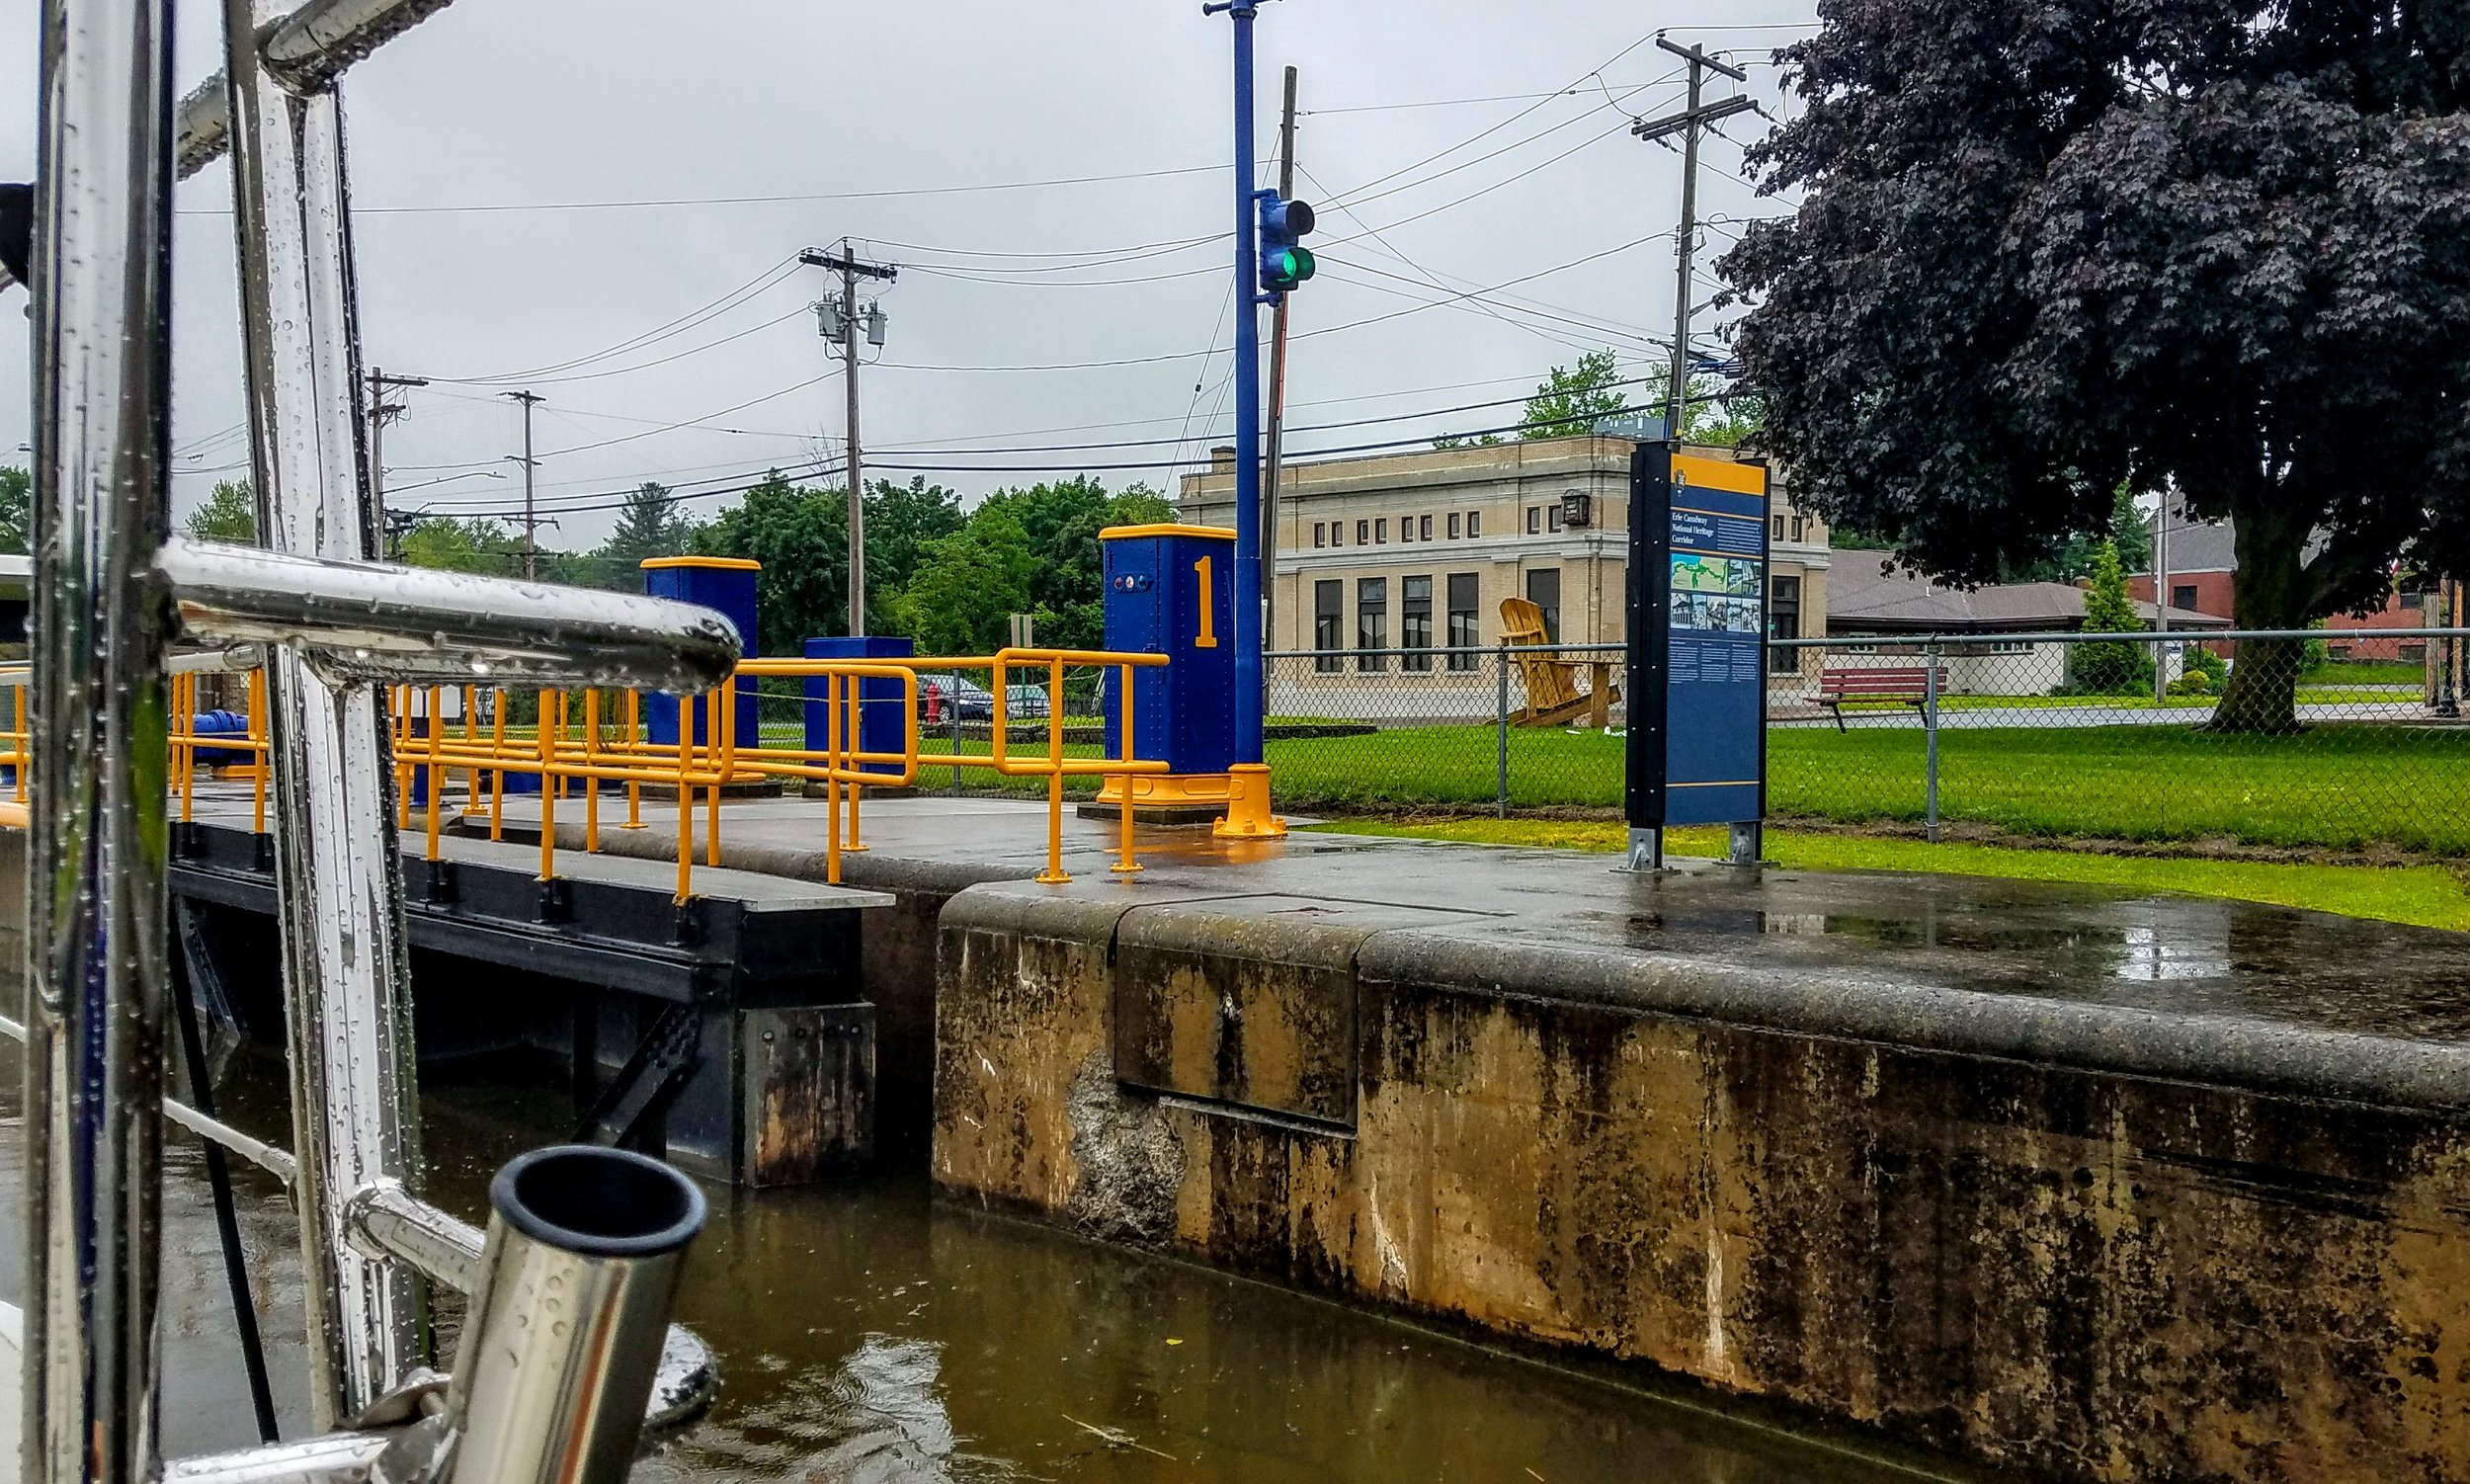 The first lock (lock 1) on the Oswego Canal